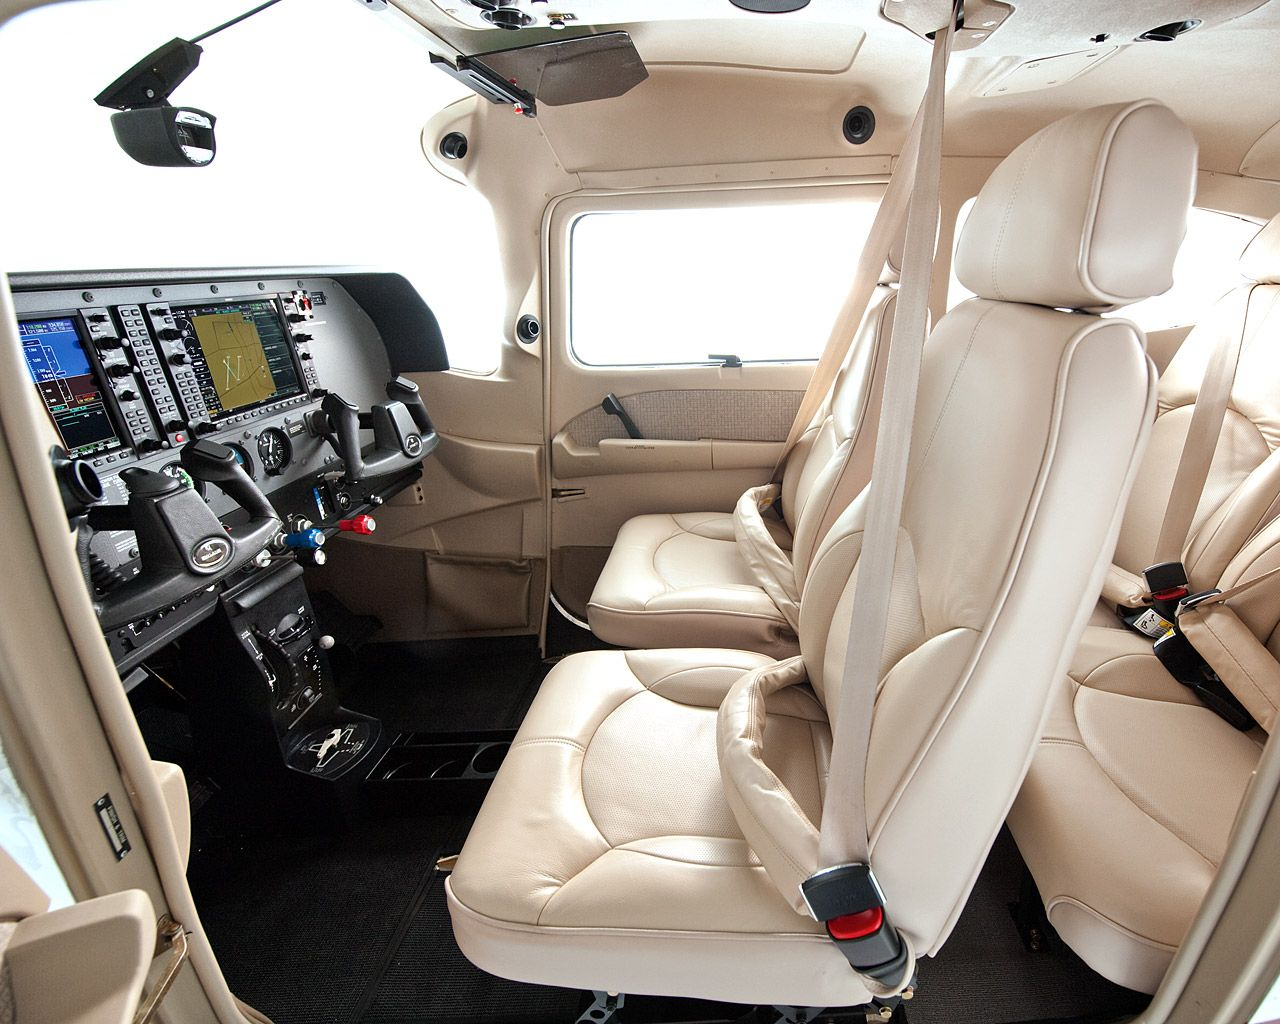 Cessna 172 Interior And Upholstery